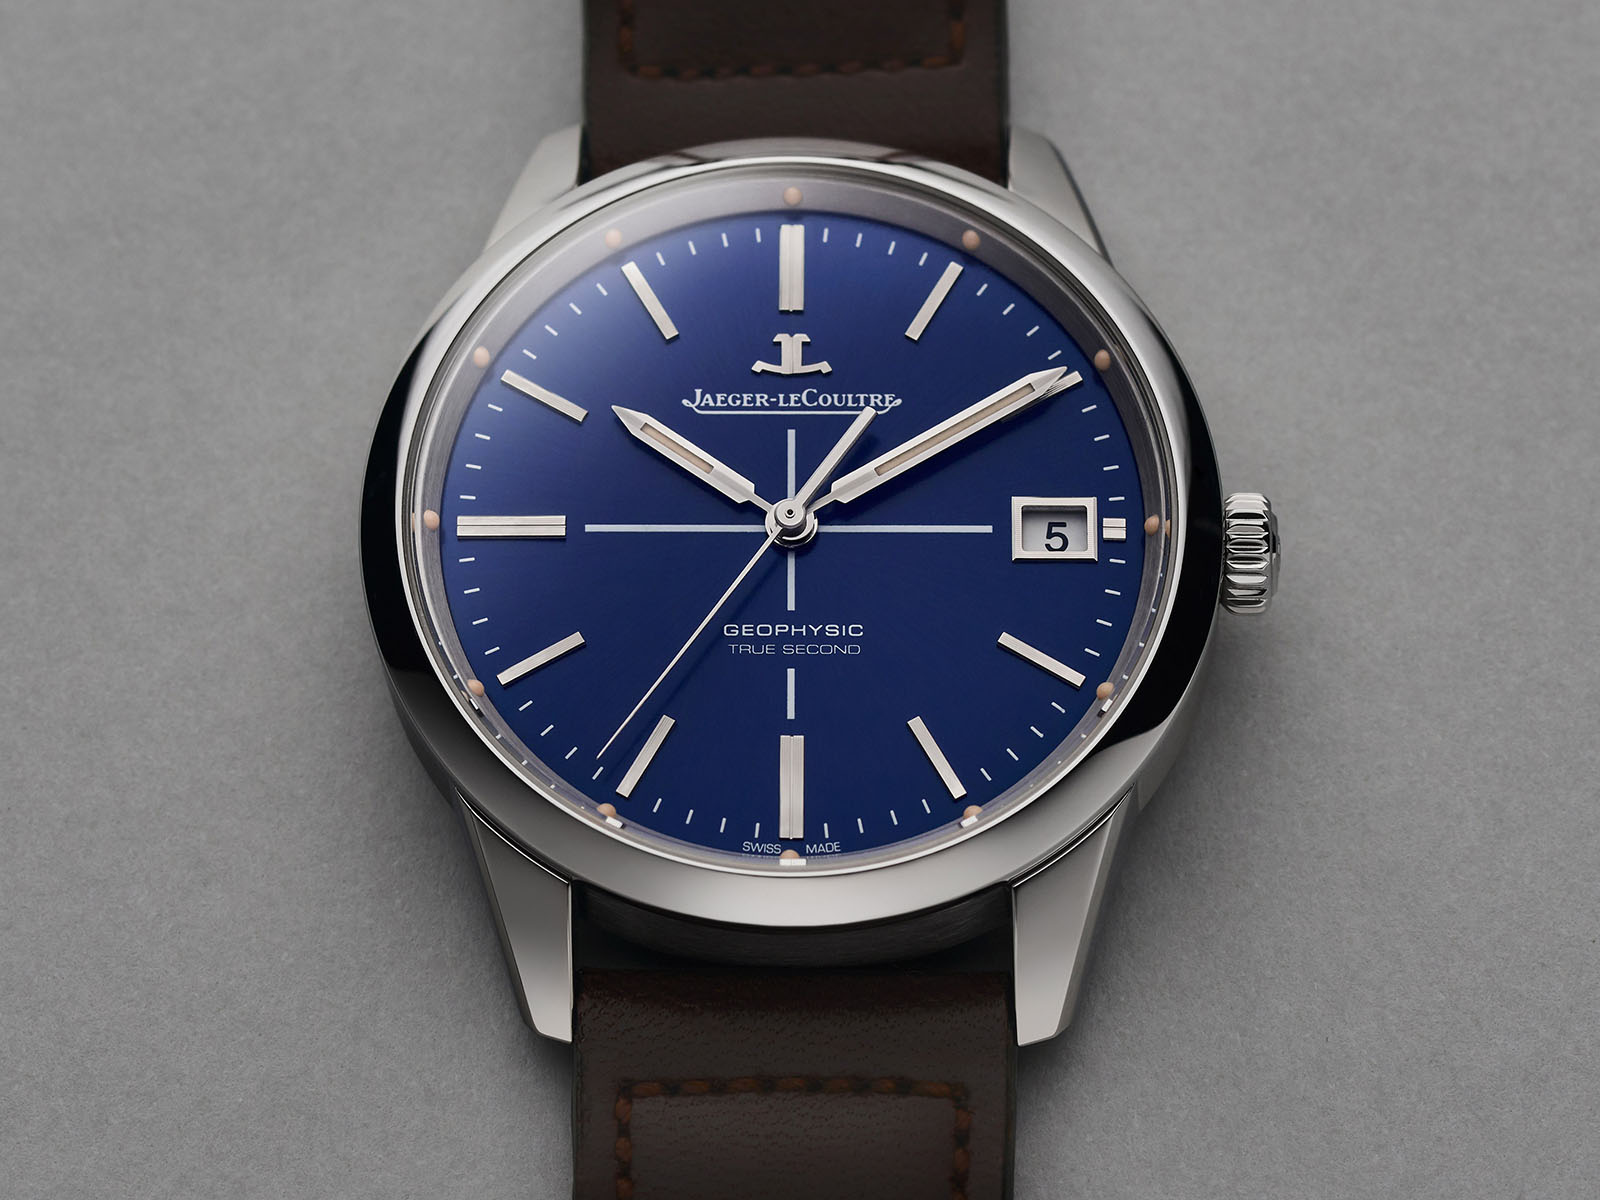 jaeger-lecoultre-geophysic-true-second-blue-6.jpg